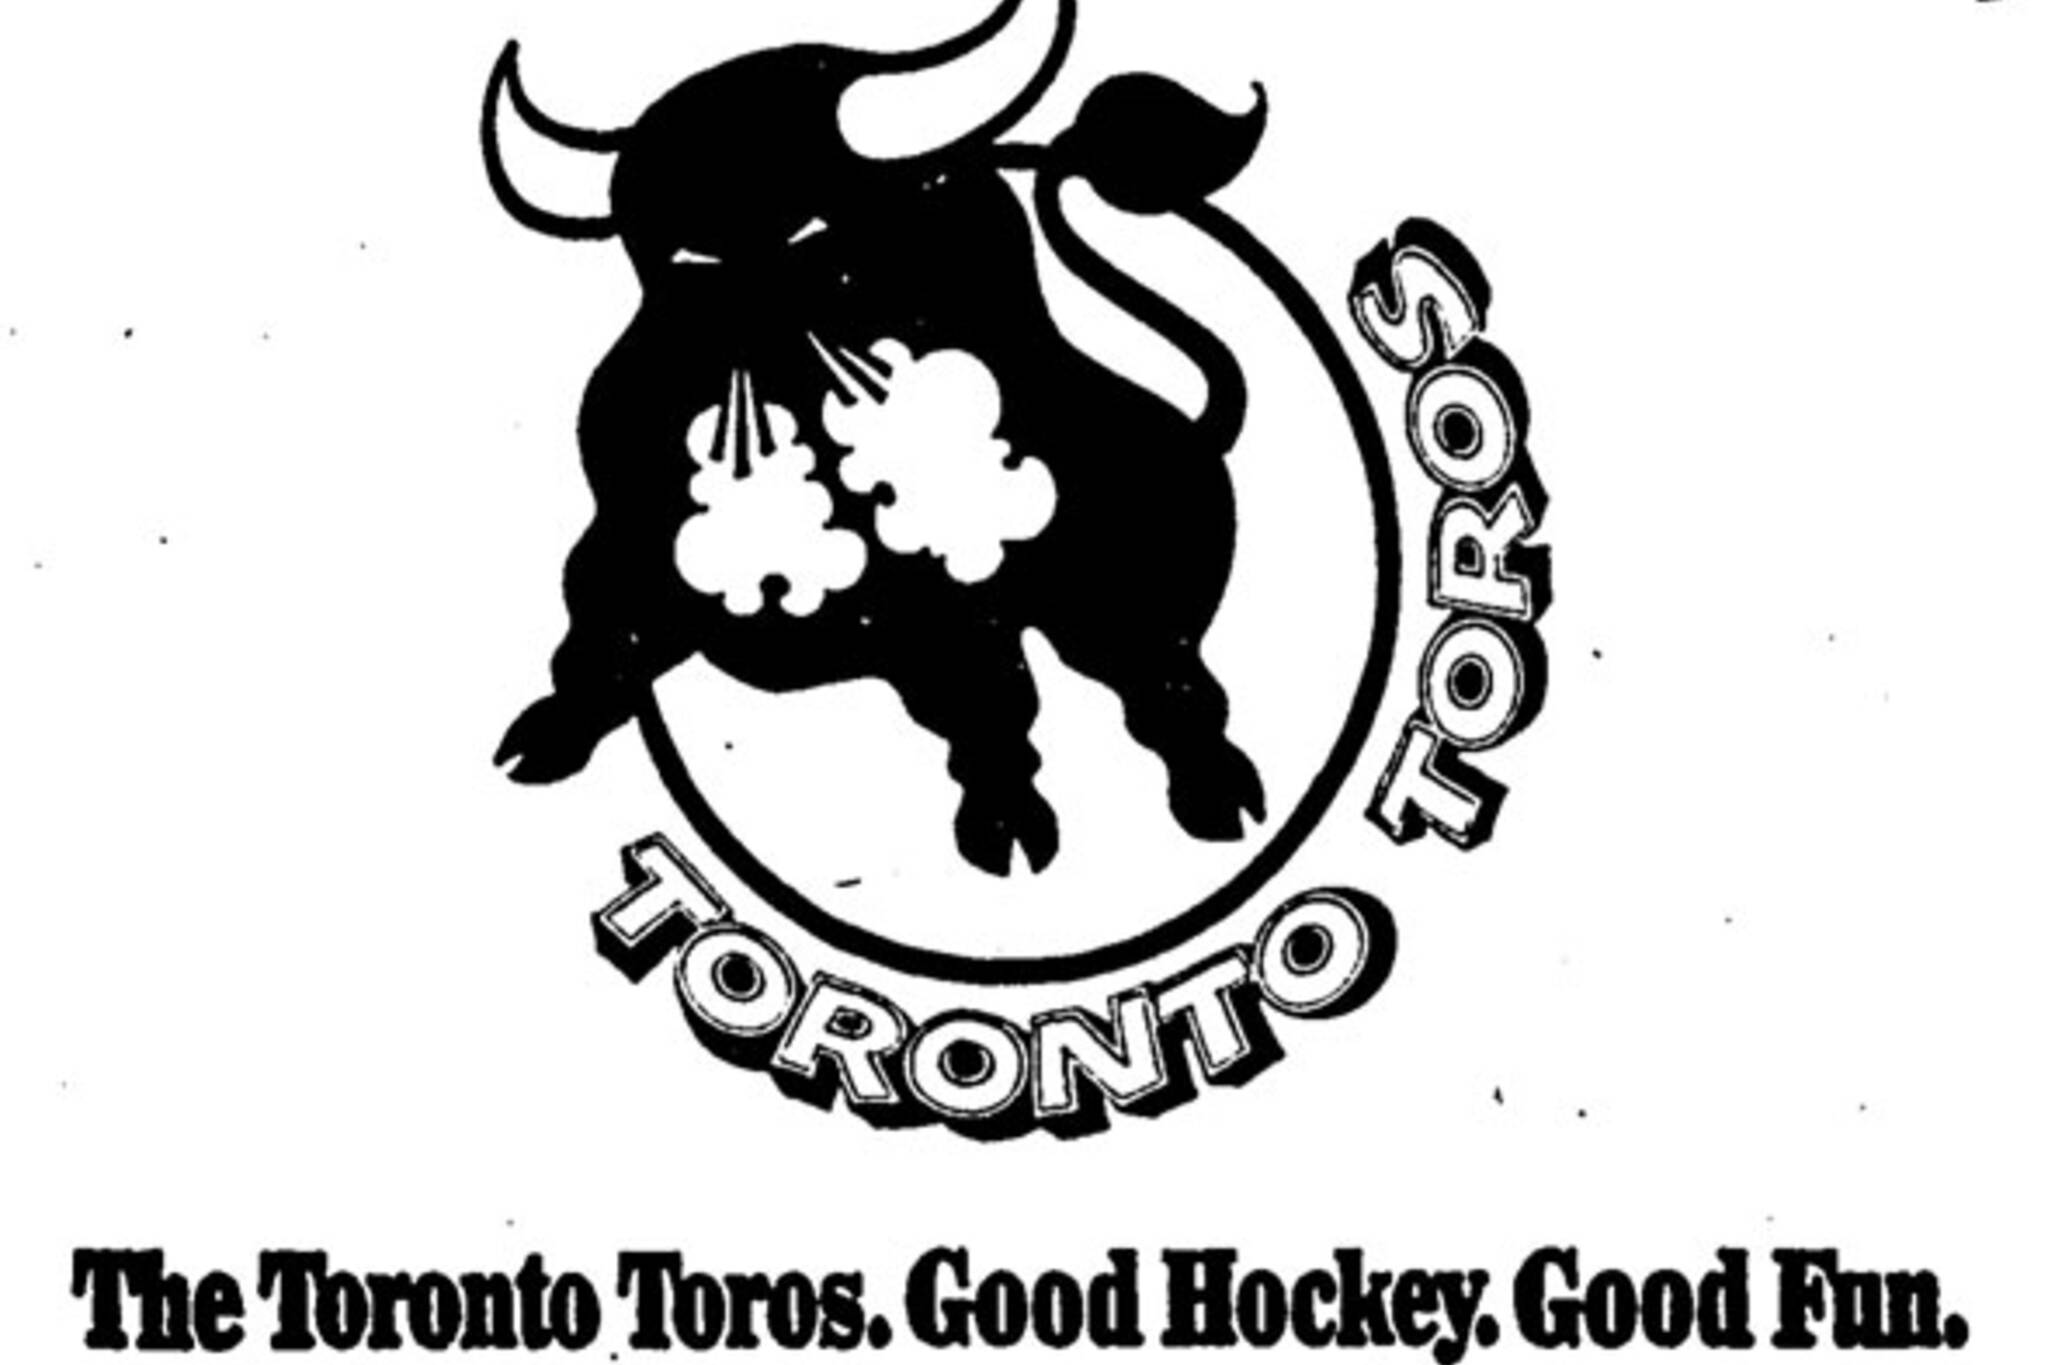 That time when the Toronto Toros took on the Leafs